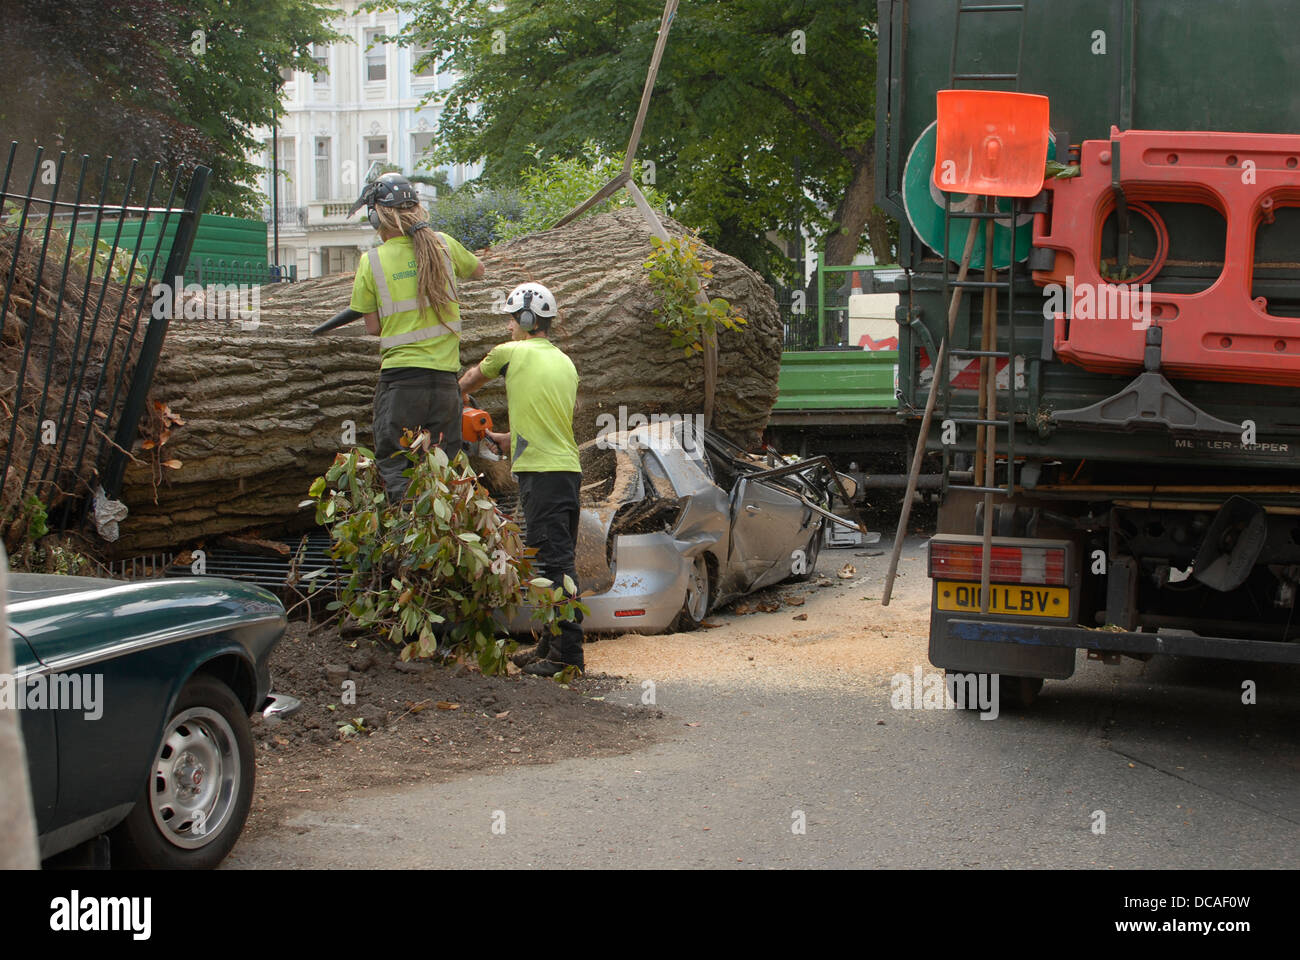 Car crushed by falling tree in Colville Square Notting Hill London Stock Photo